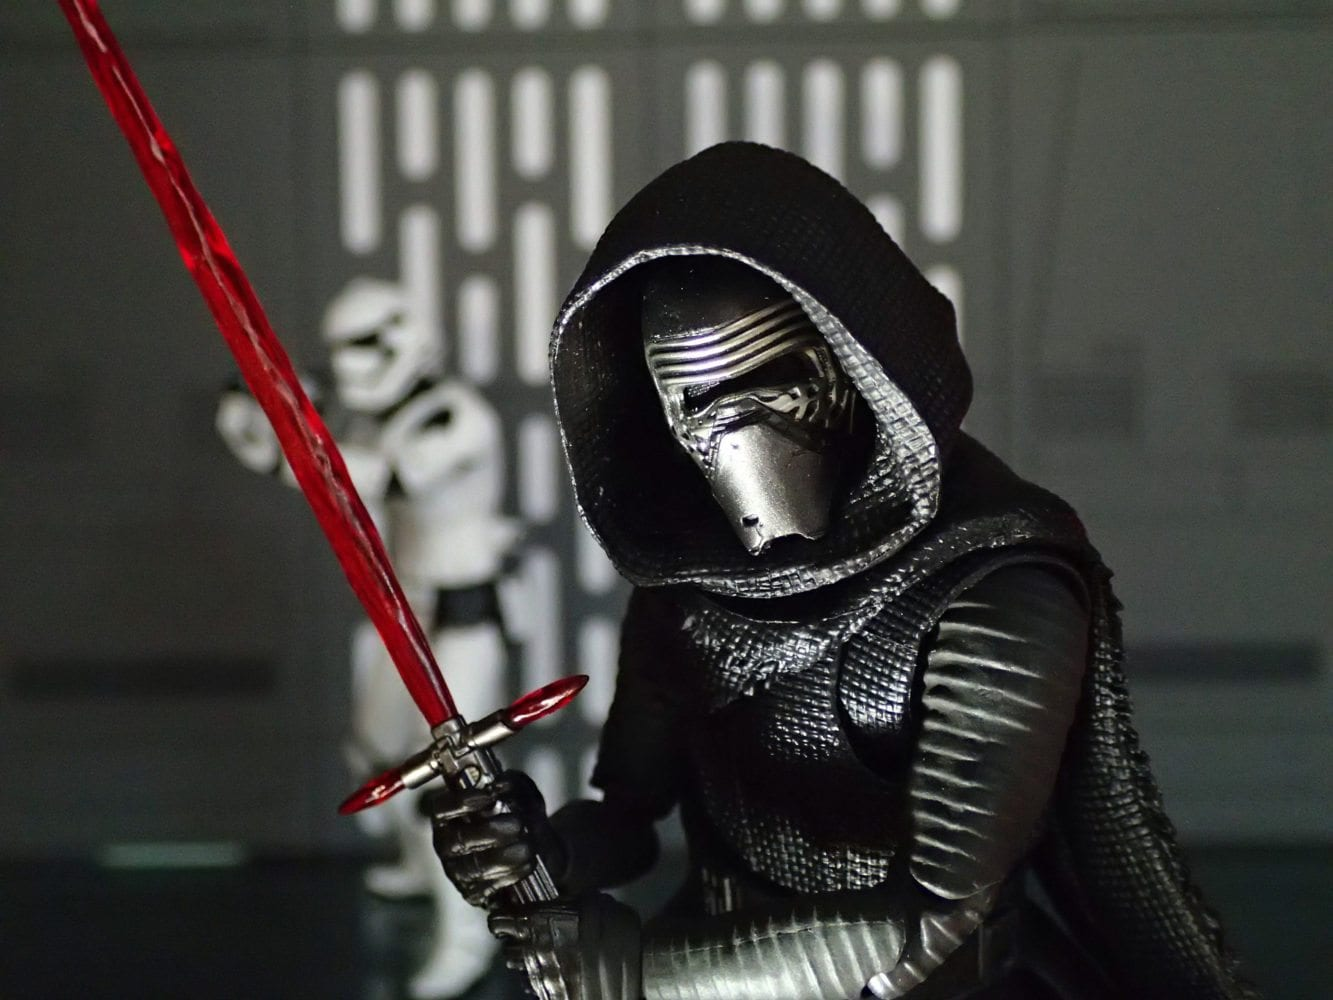 Photographic Plastic, Kylo Ren, action figure photography